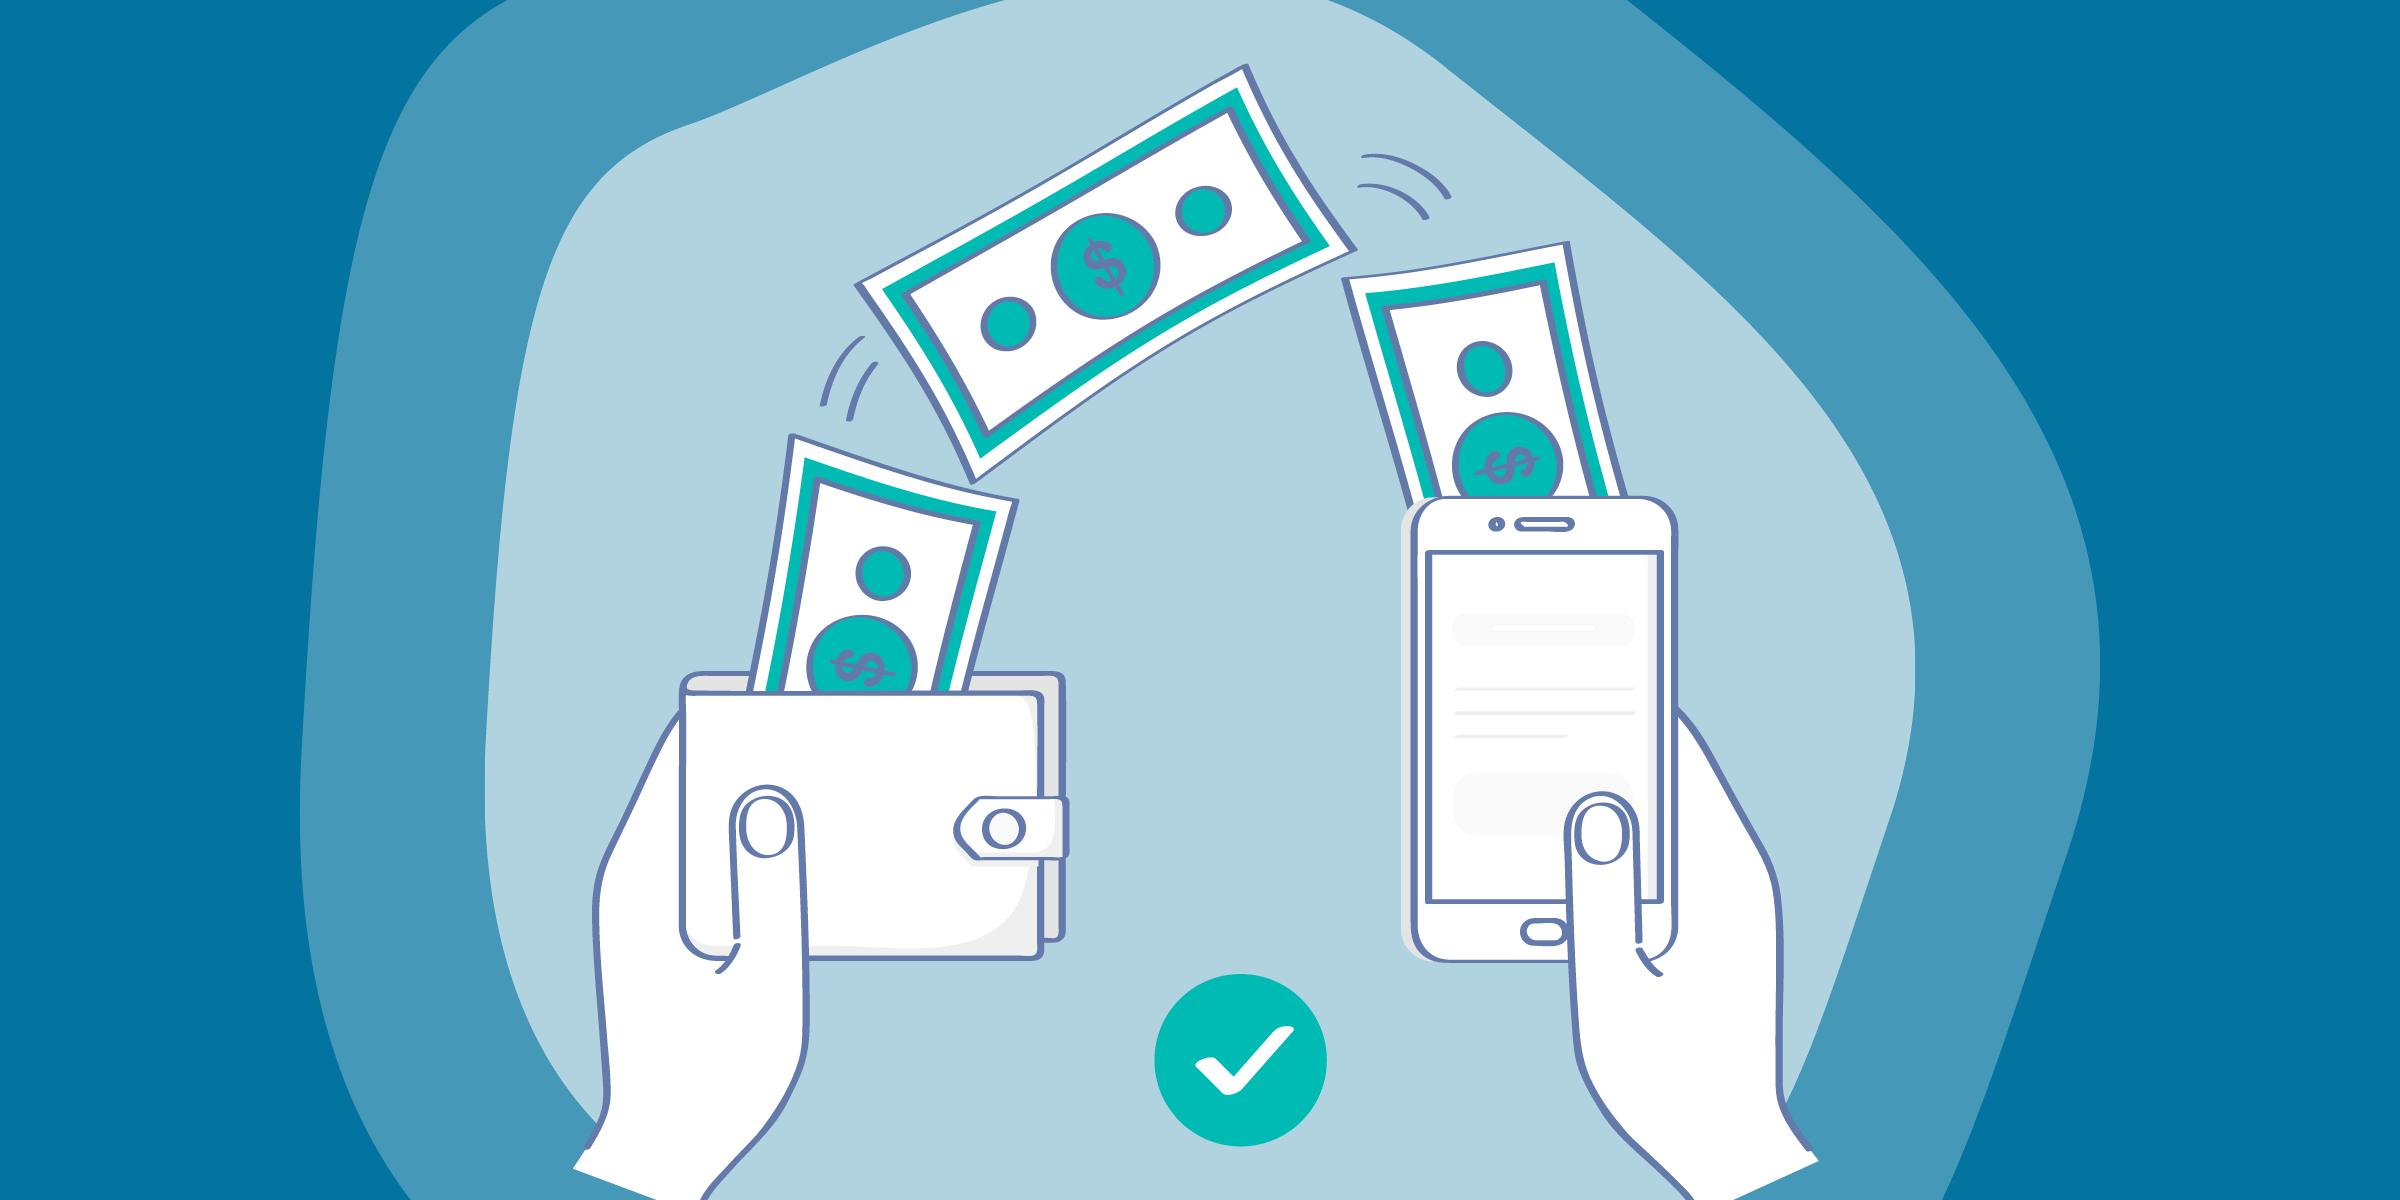 drawing of money moving between a phone in one hand to a wallet in another hand